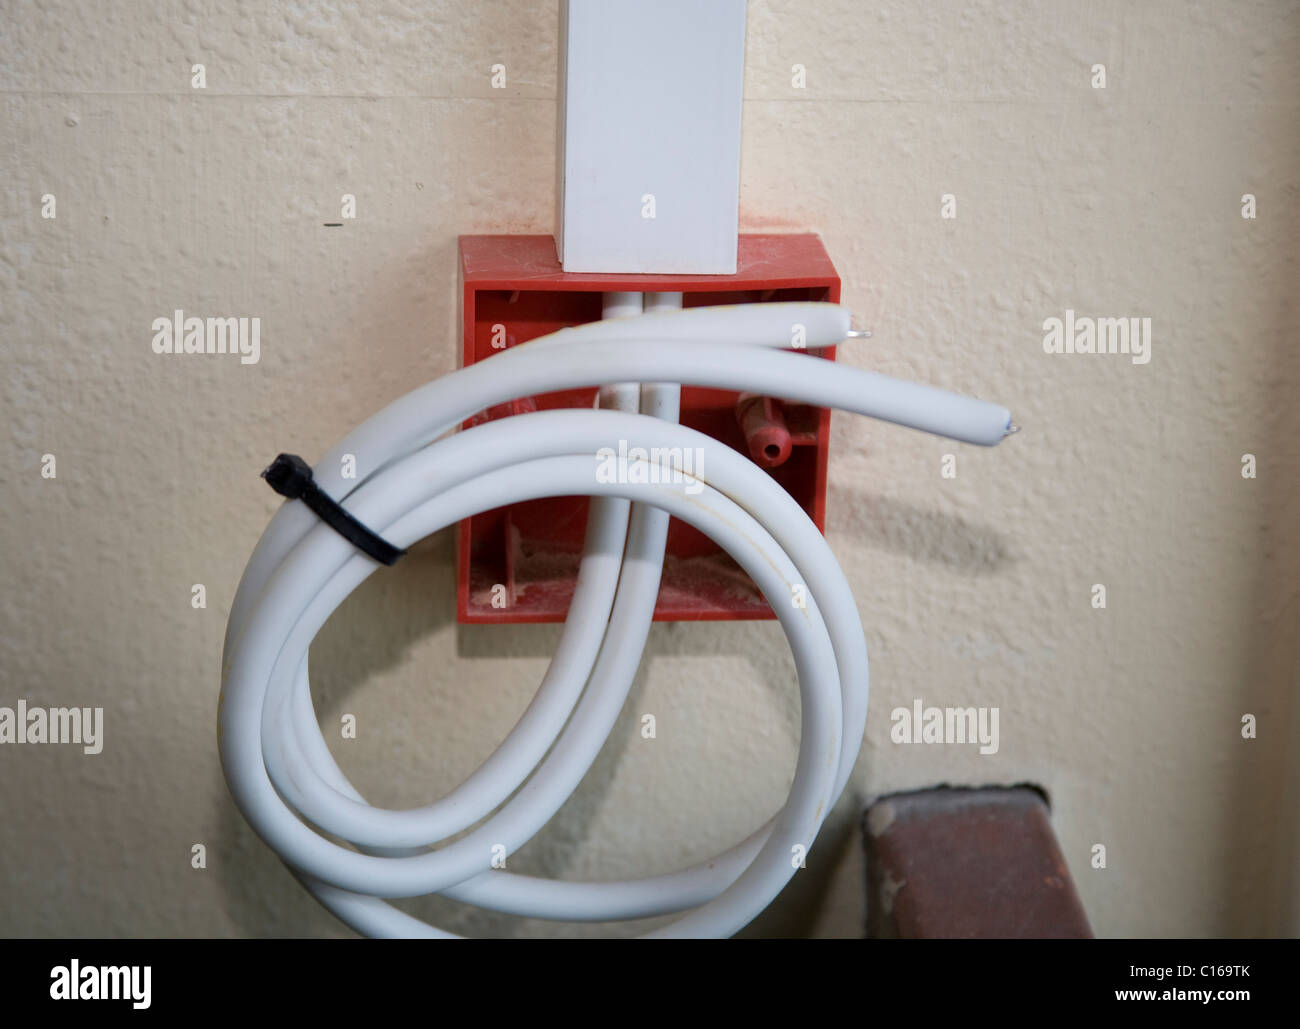 Fitting Of Domestic And Commercial Electrical Fire Equipment Stock Wiring Installation Units Devices Safety Systems